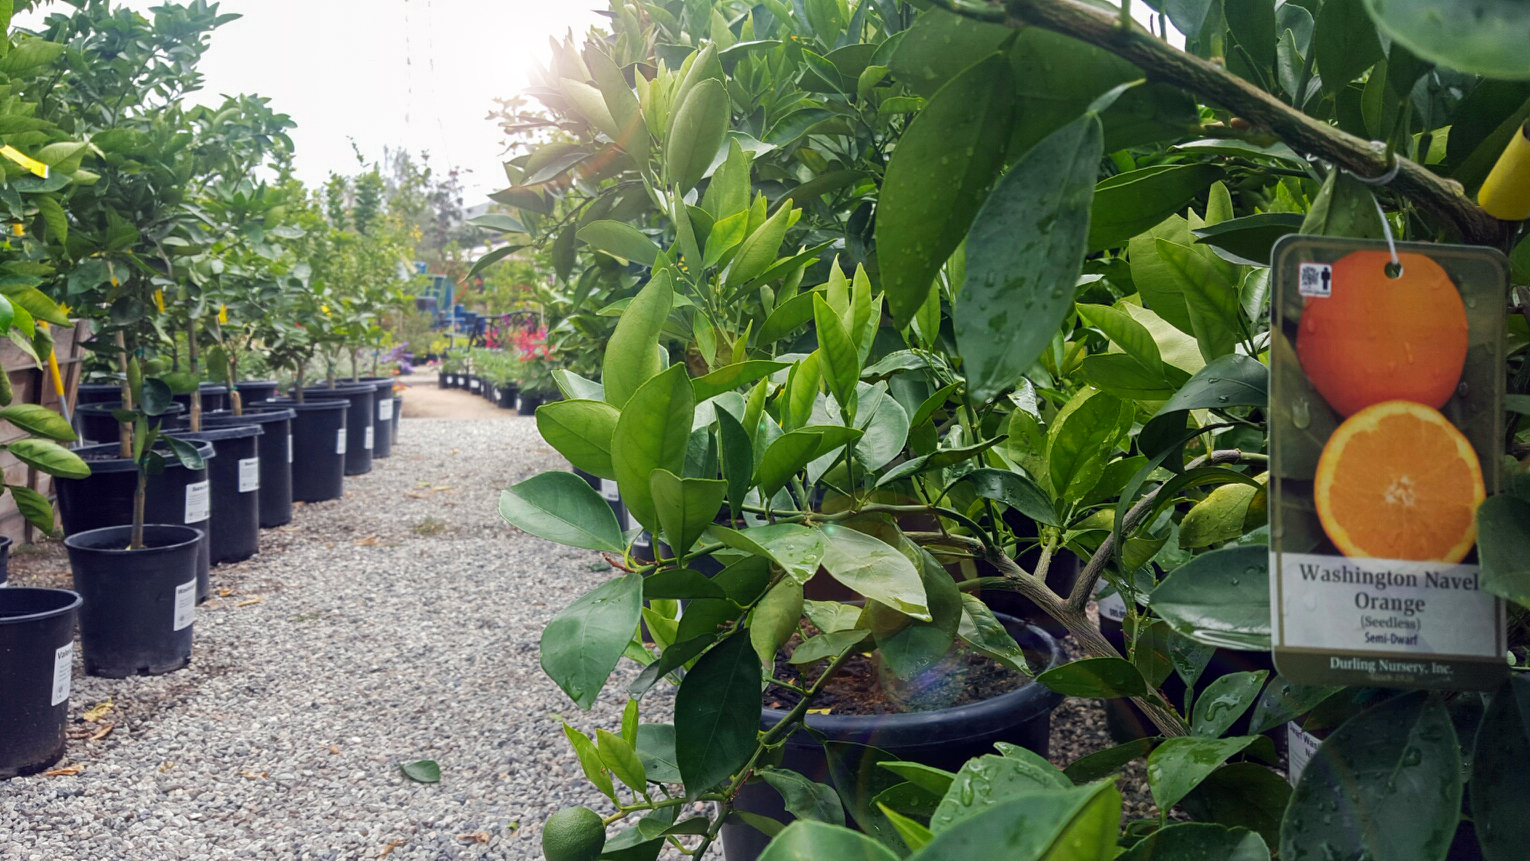 Come Check Out Our Latest Shipment Of Luscious Fruits We Have Standard And Dwarf Varities Suitable For A Garden Any Size